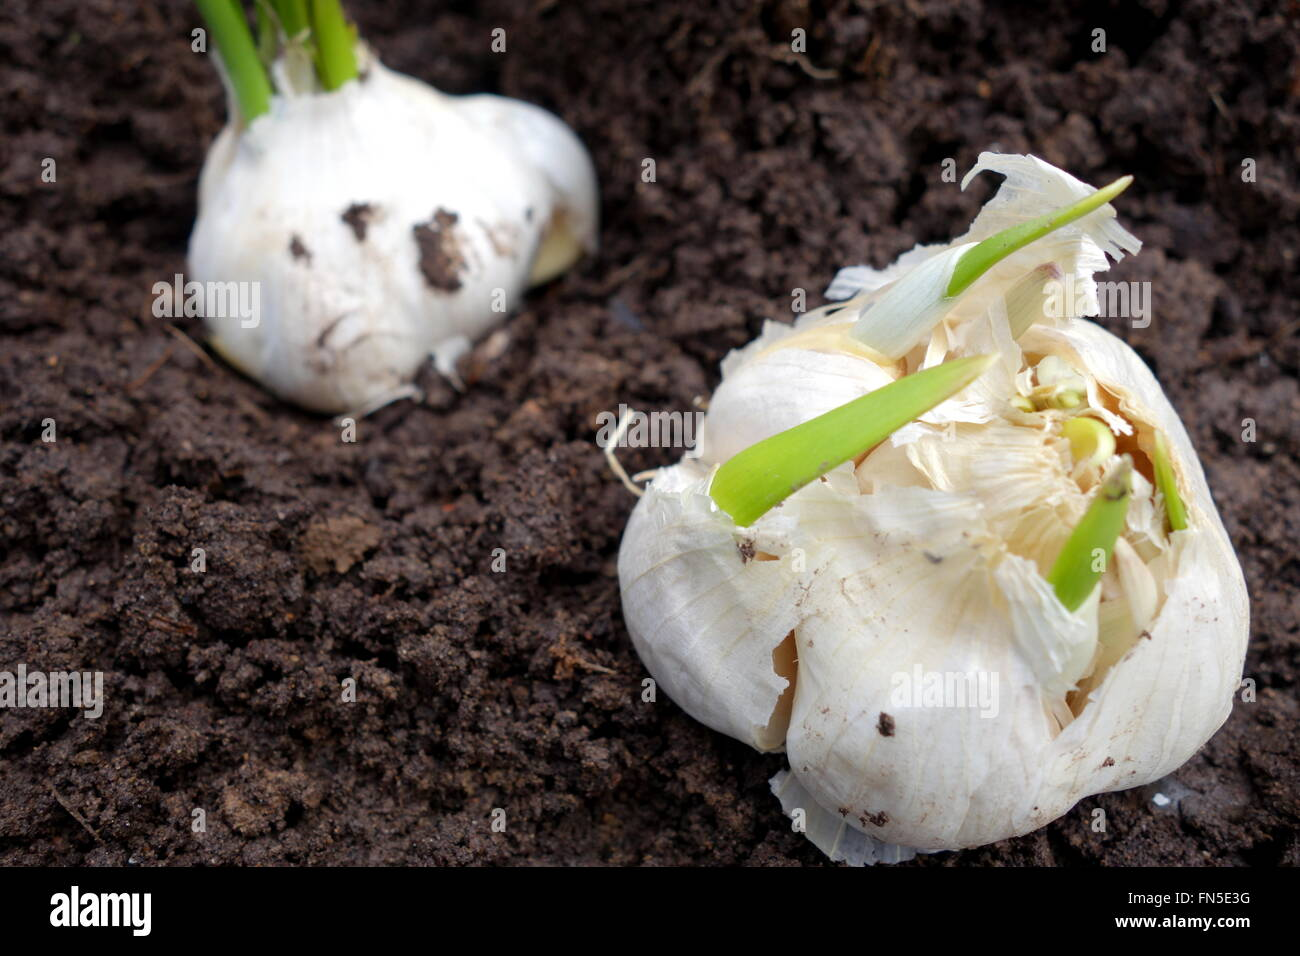 Planting sprouted garlic bulb - Stock Image